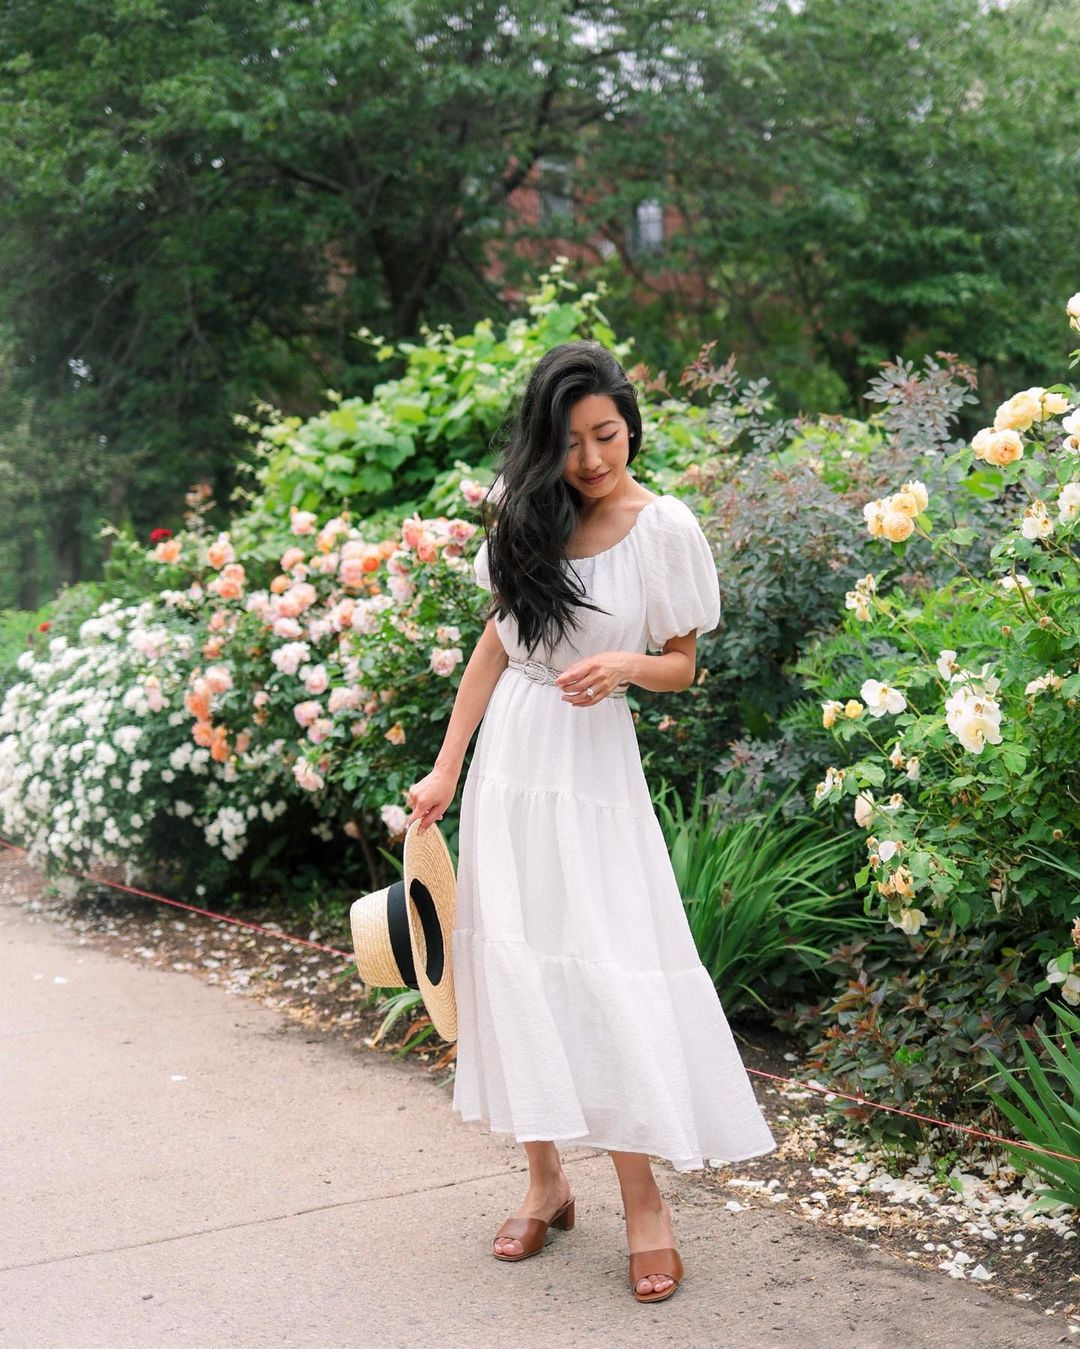 How to Pull Off Summer White Dresses This Season